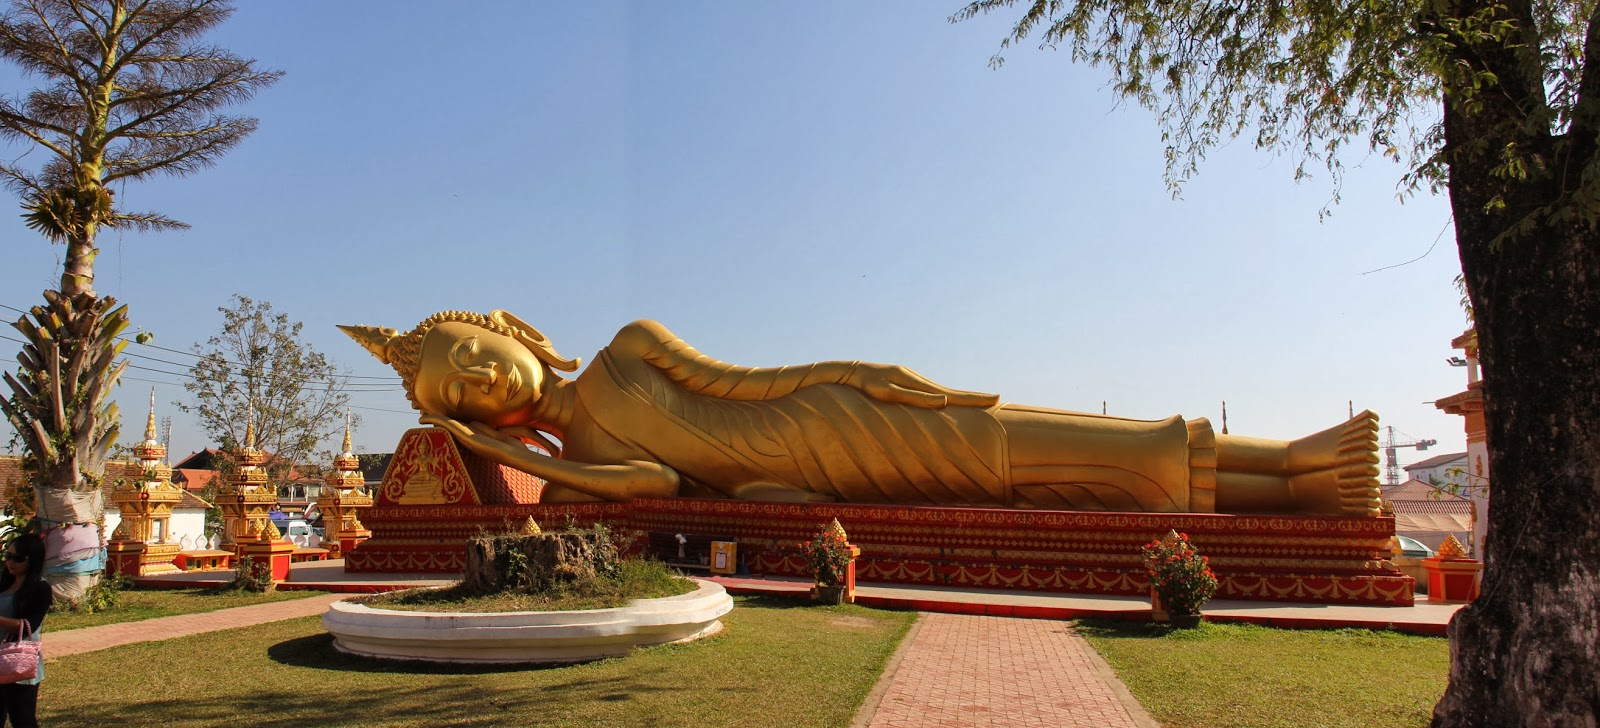 The huge golden reclining Buddha was a special sight in Vientiane!